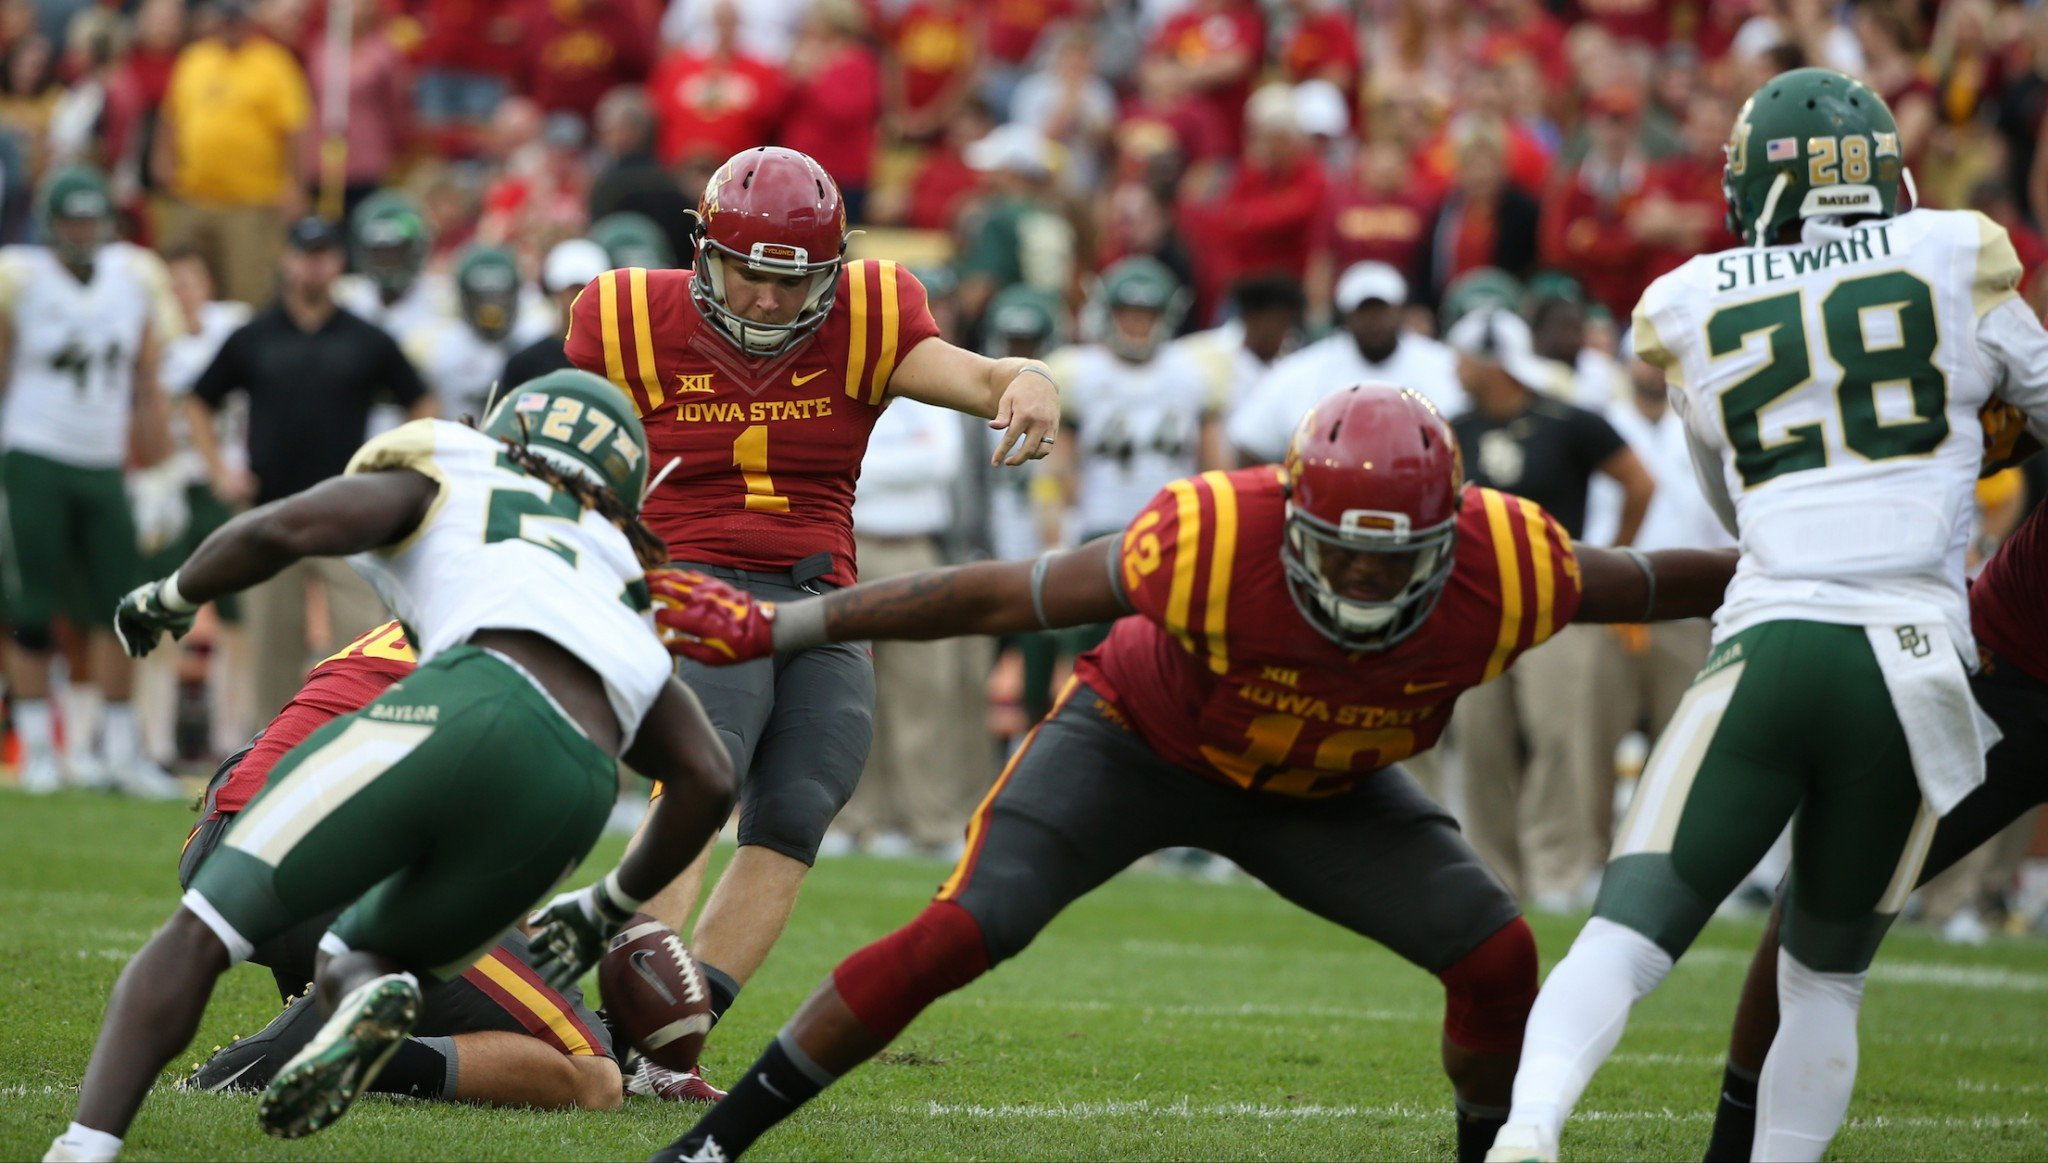 Iowa State kicker Cole Netten was an All-Big 12 selection in 2016. (AP Photo/Justin Hayworth)